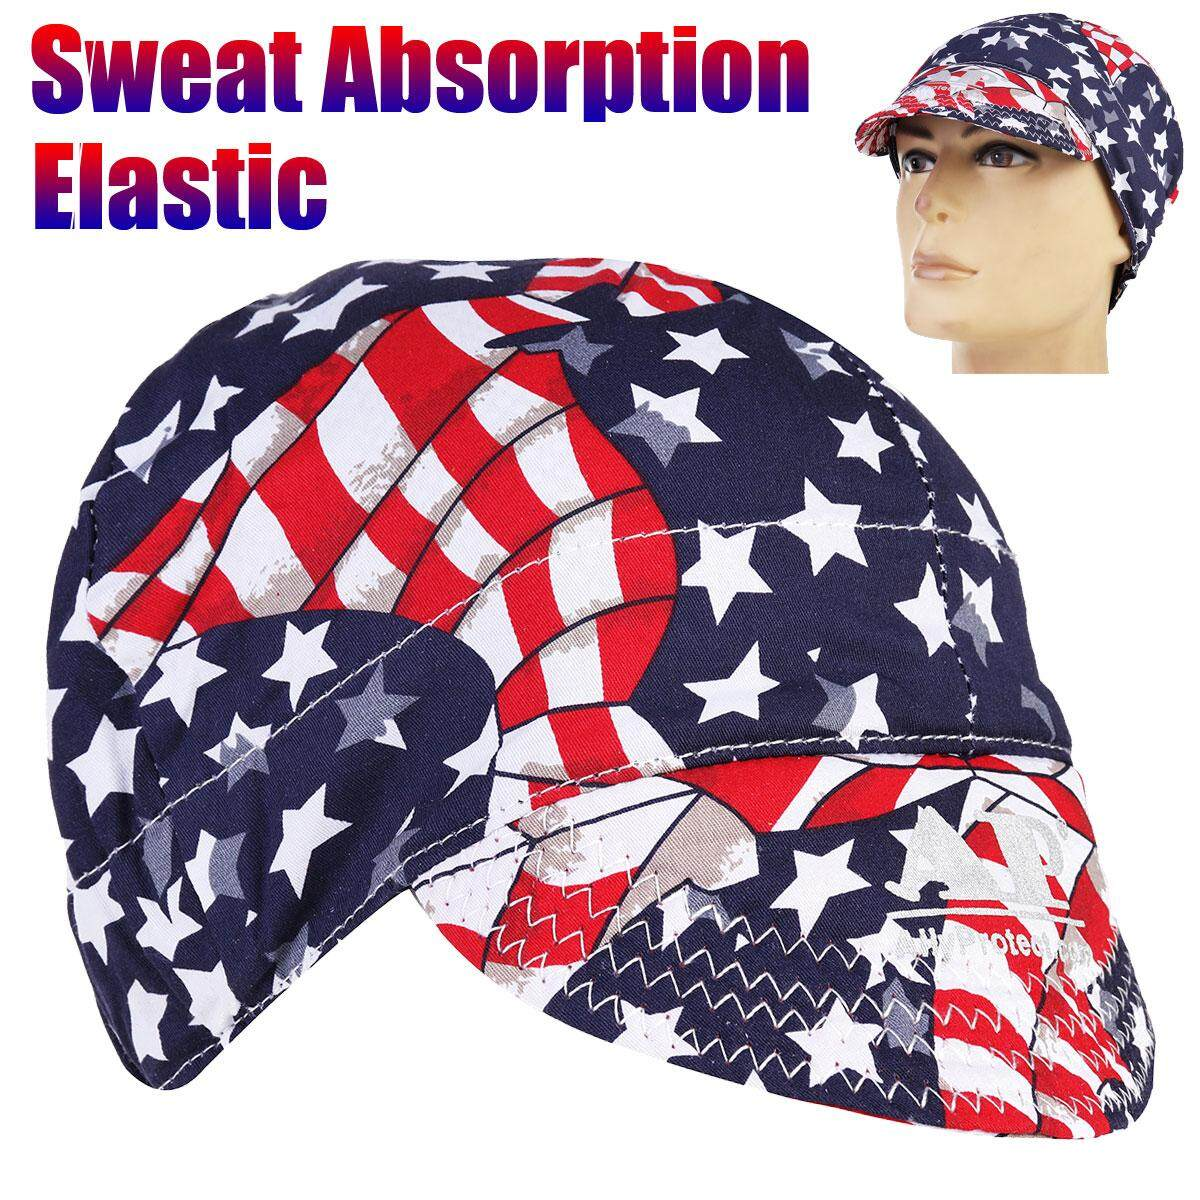 5pcs Universal Sweat Absorption Elastic Welding Welder Hat Cap Cotton Patriotic